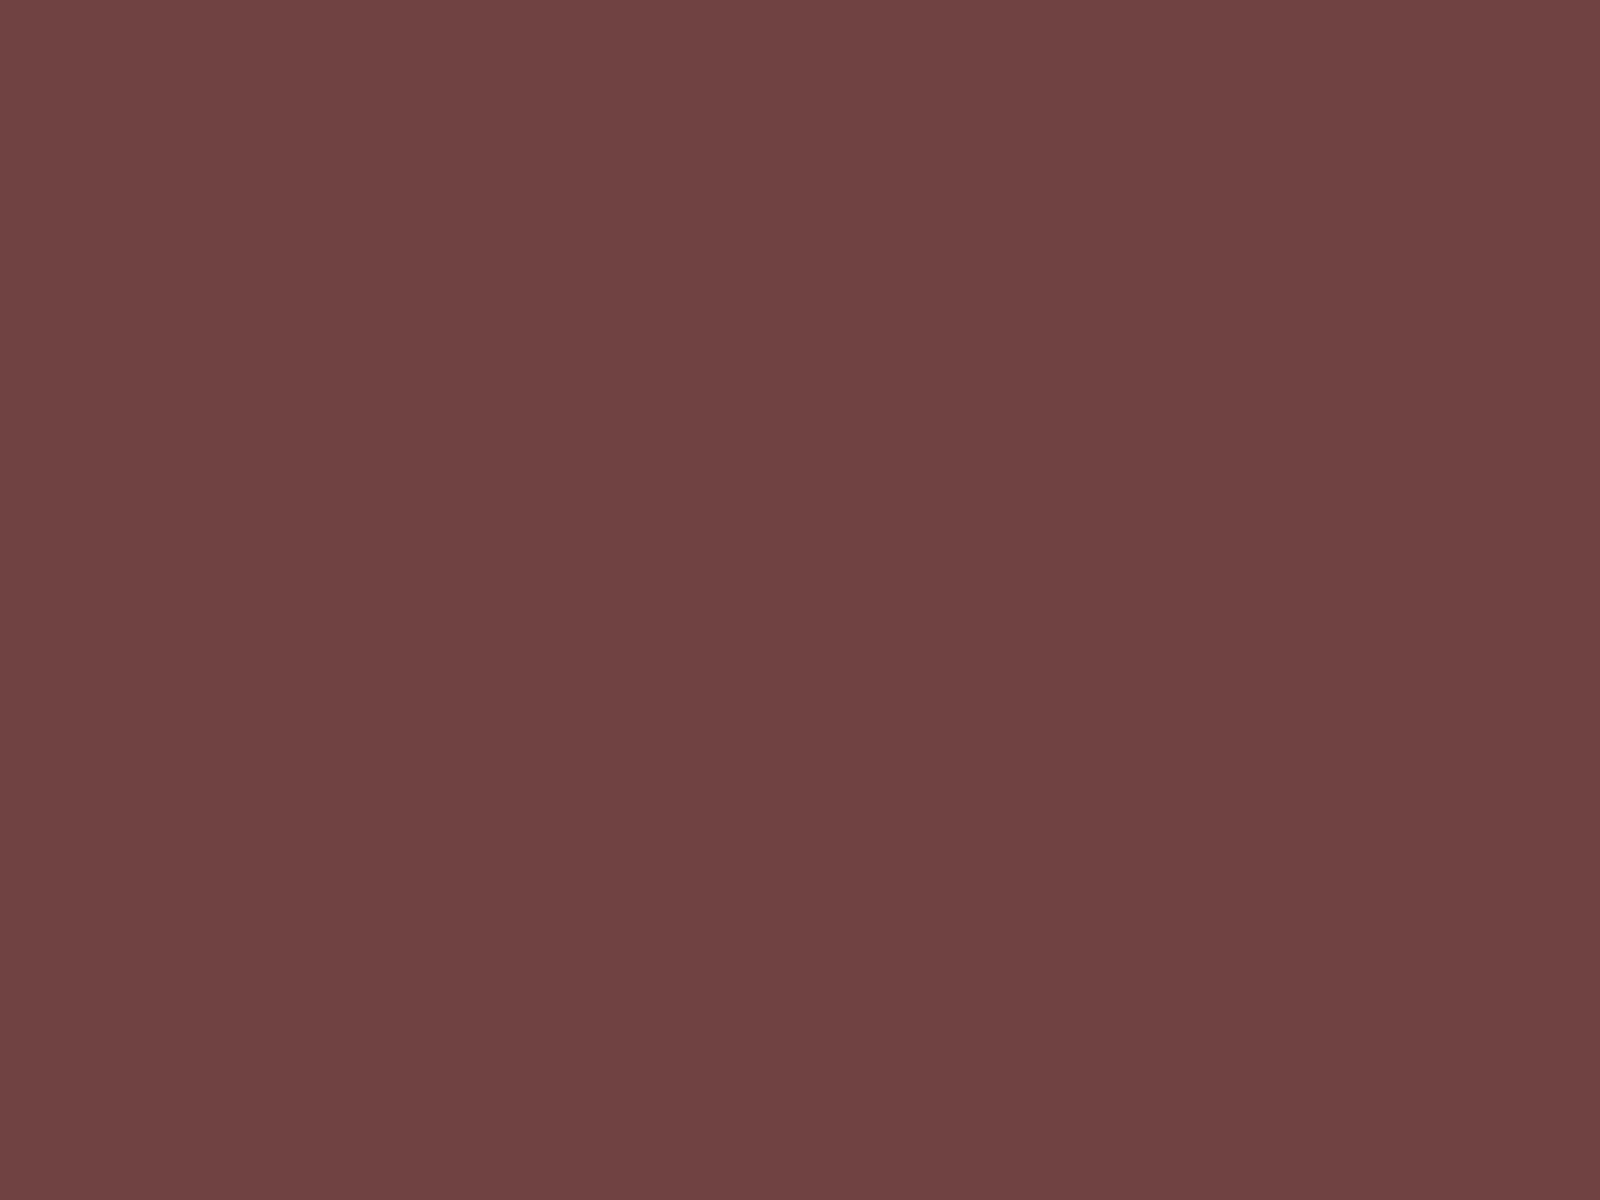 1600x1200 Deep Coffee Solid Color Background